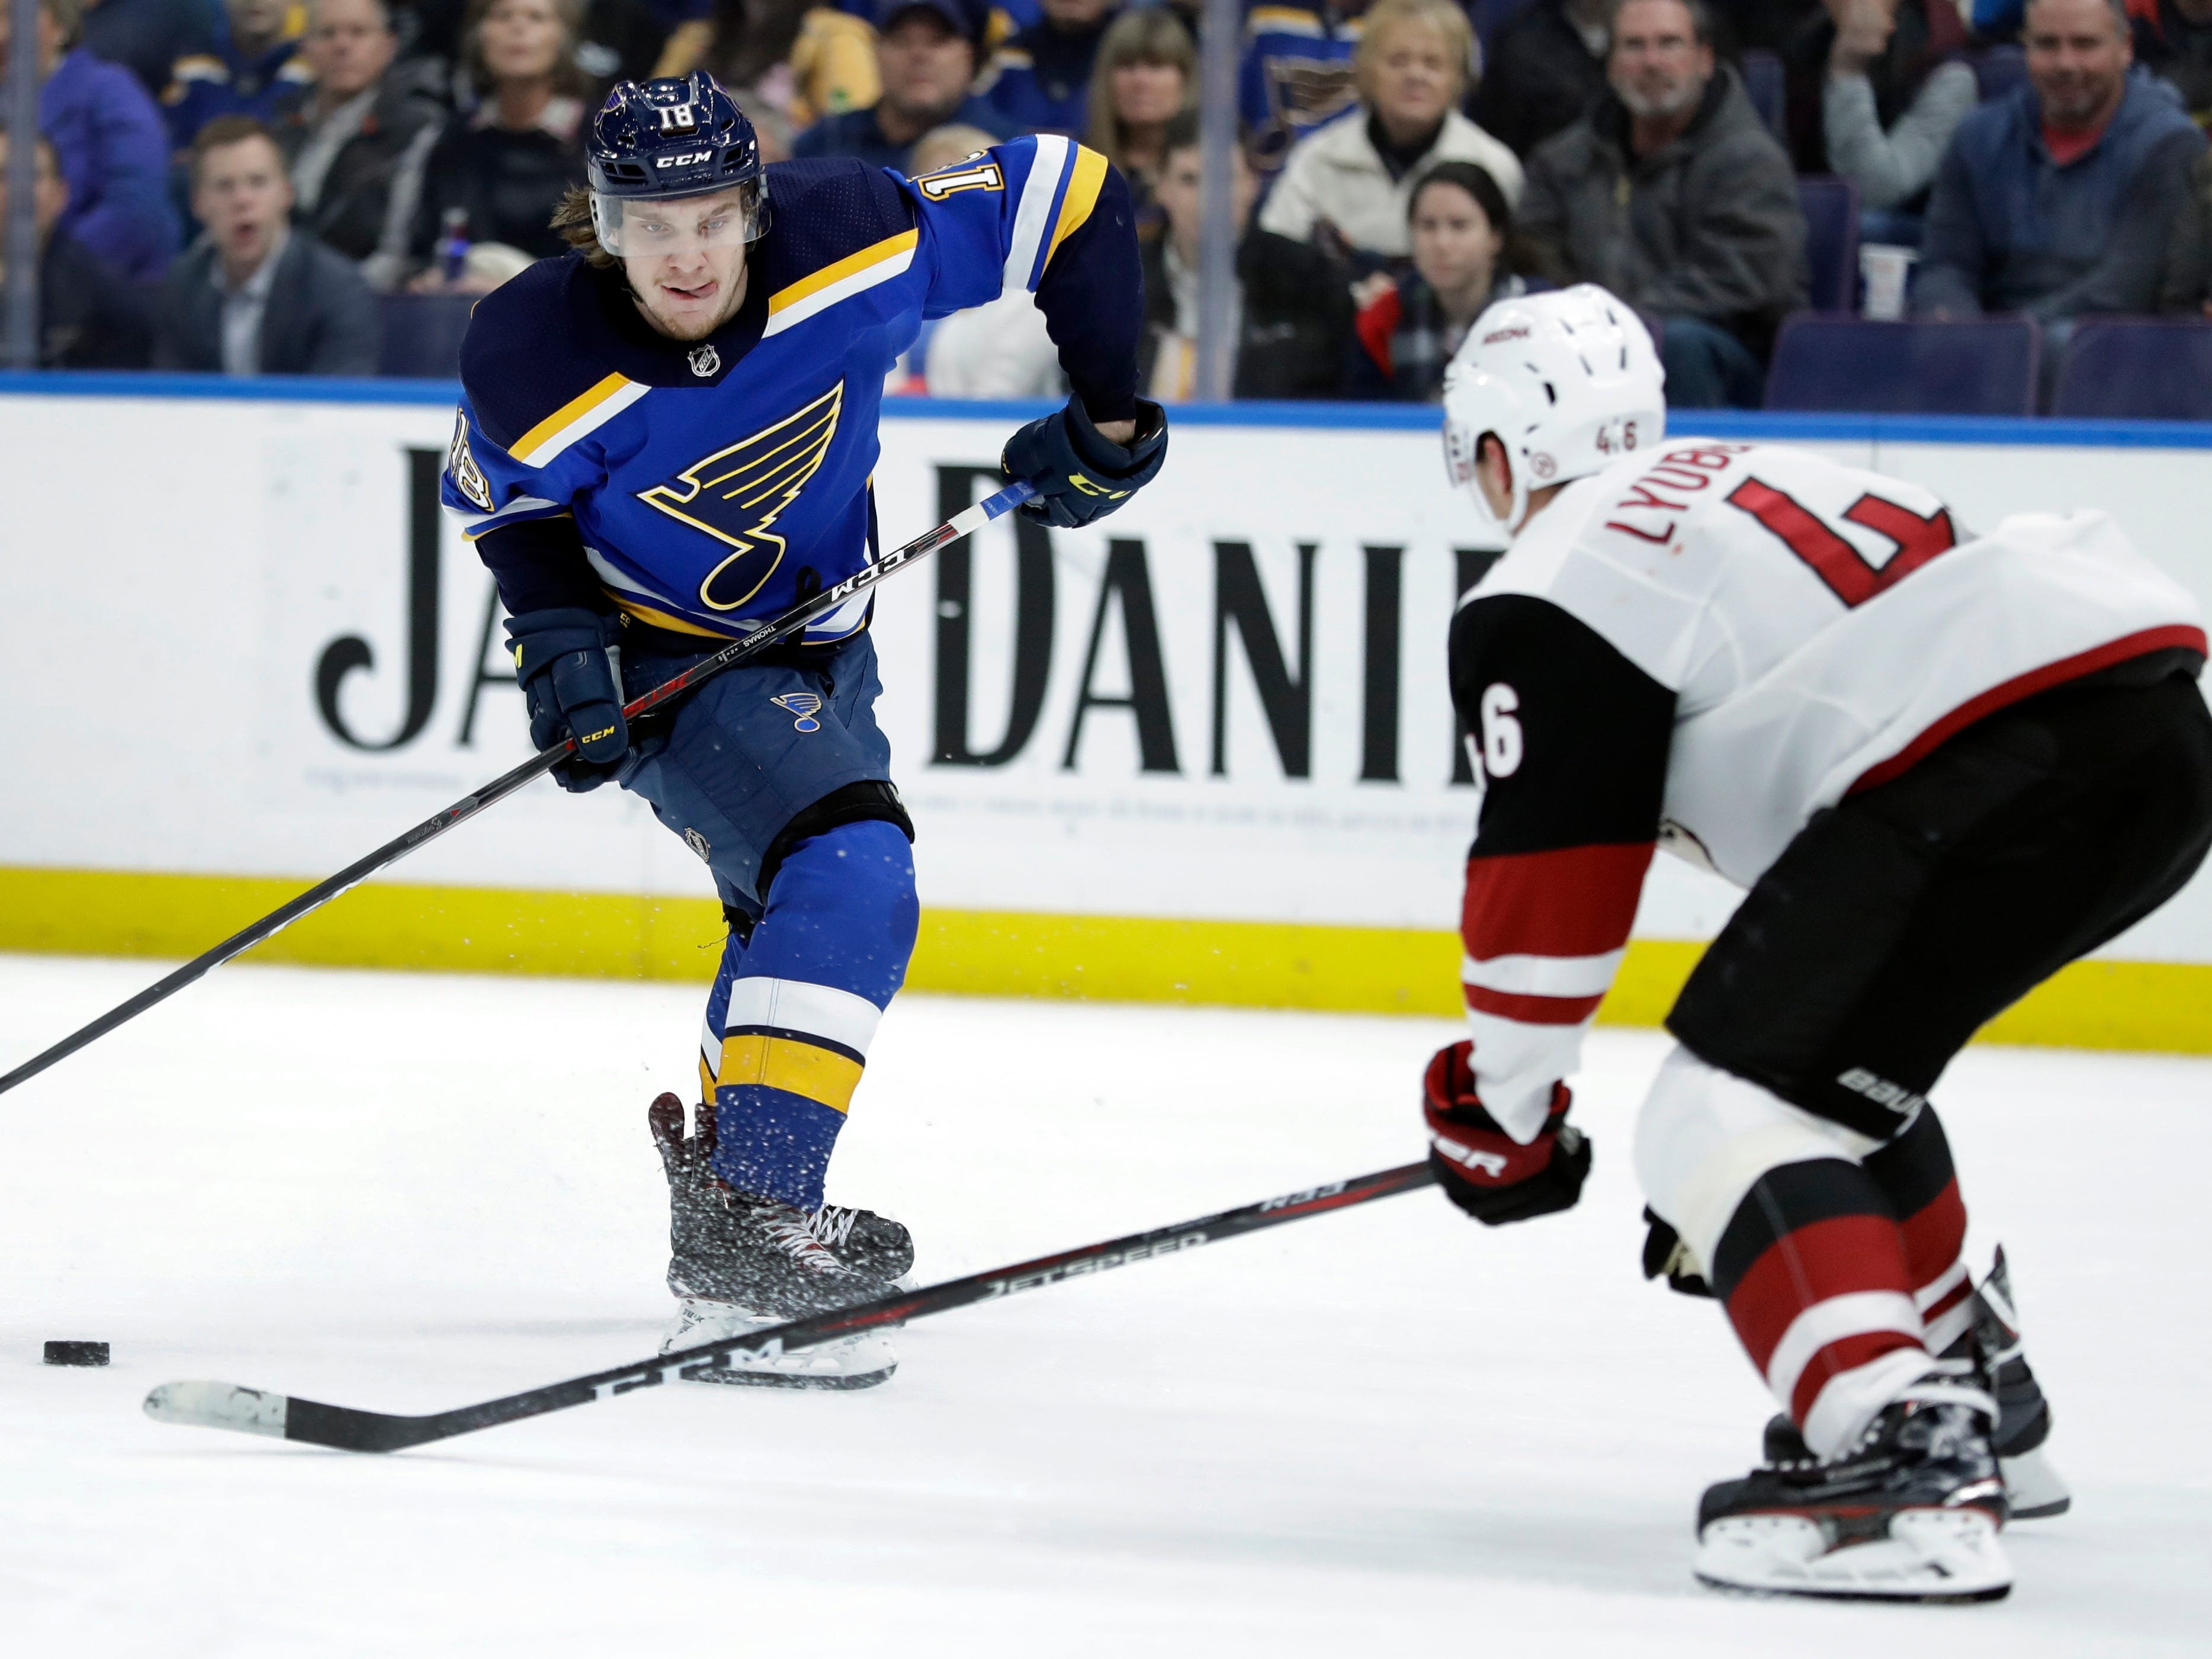 St. Louis Blues' Robert Thomas, left, looks to shoot past Arizona Coyotes' Ilya Lyubushkin, of Russia, during the second period of an NHL hockey game, Tuesday, March 12, 2019, in St. Louis.